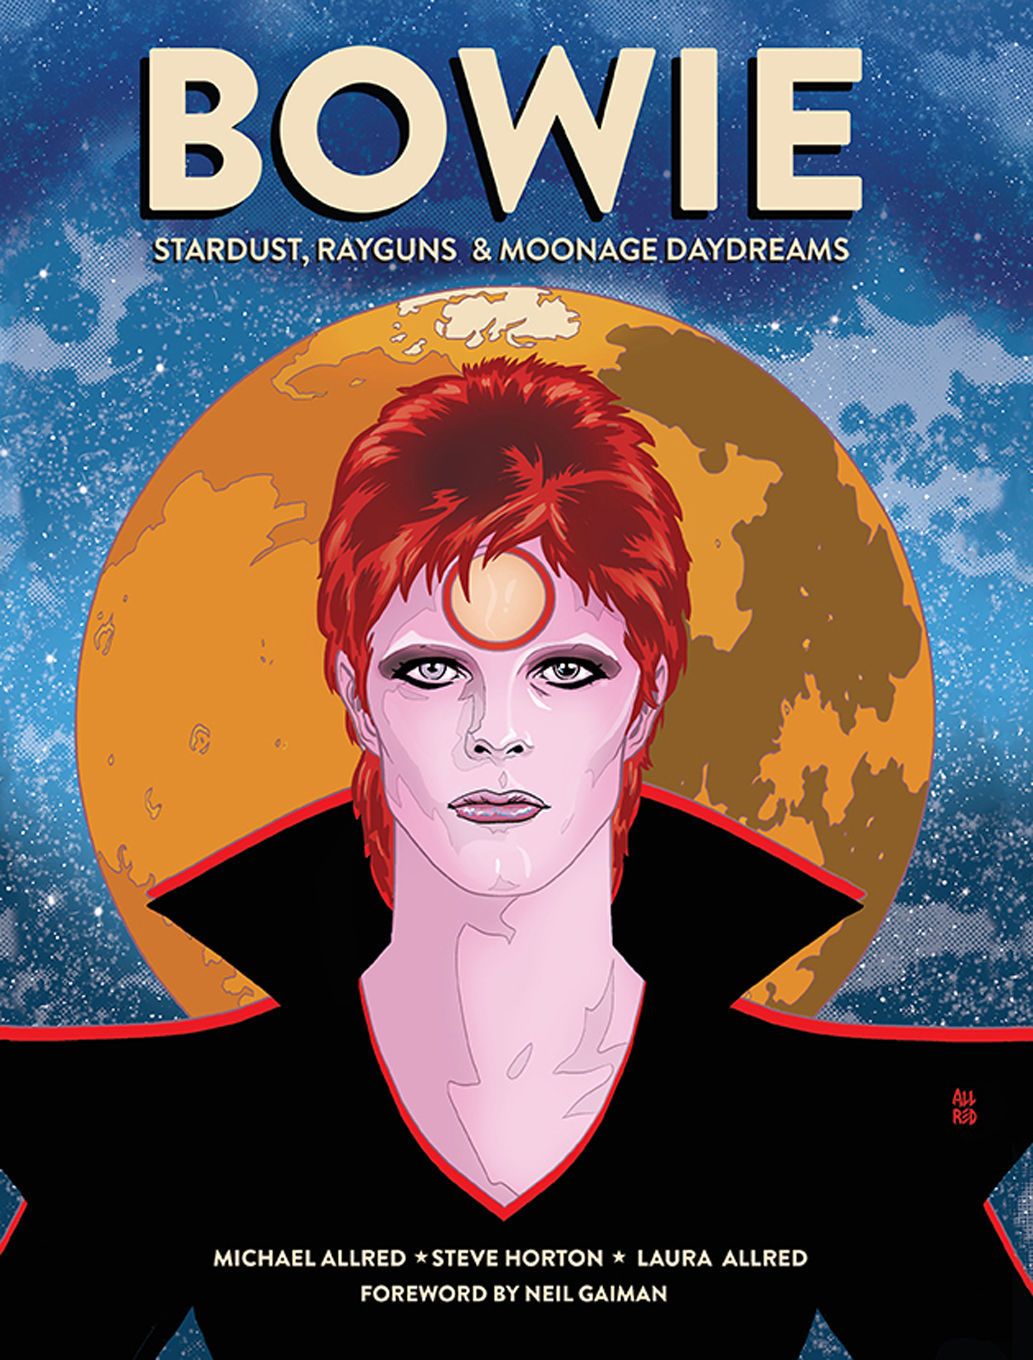 Books: 'Bowie' among graphic novels to read in 2020